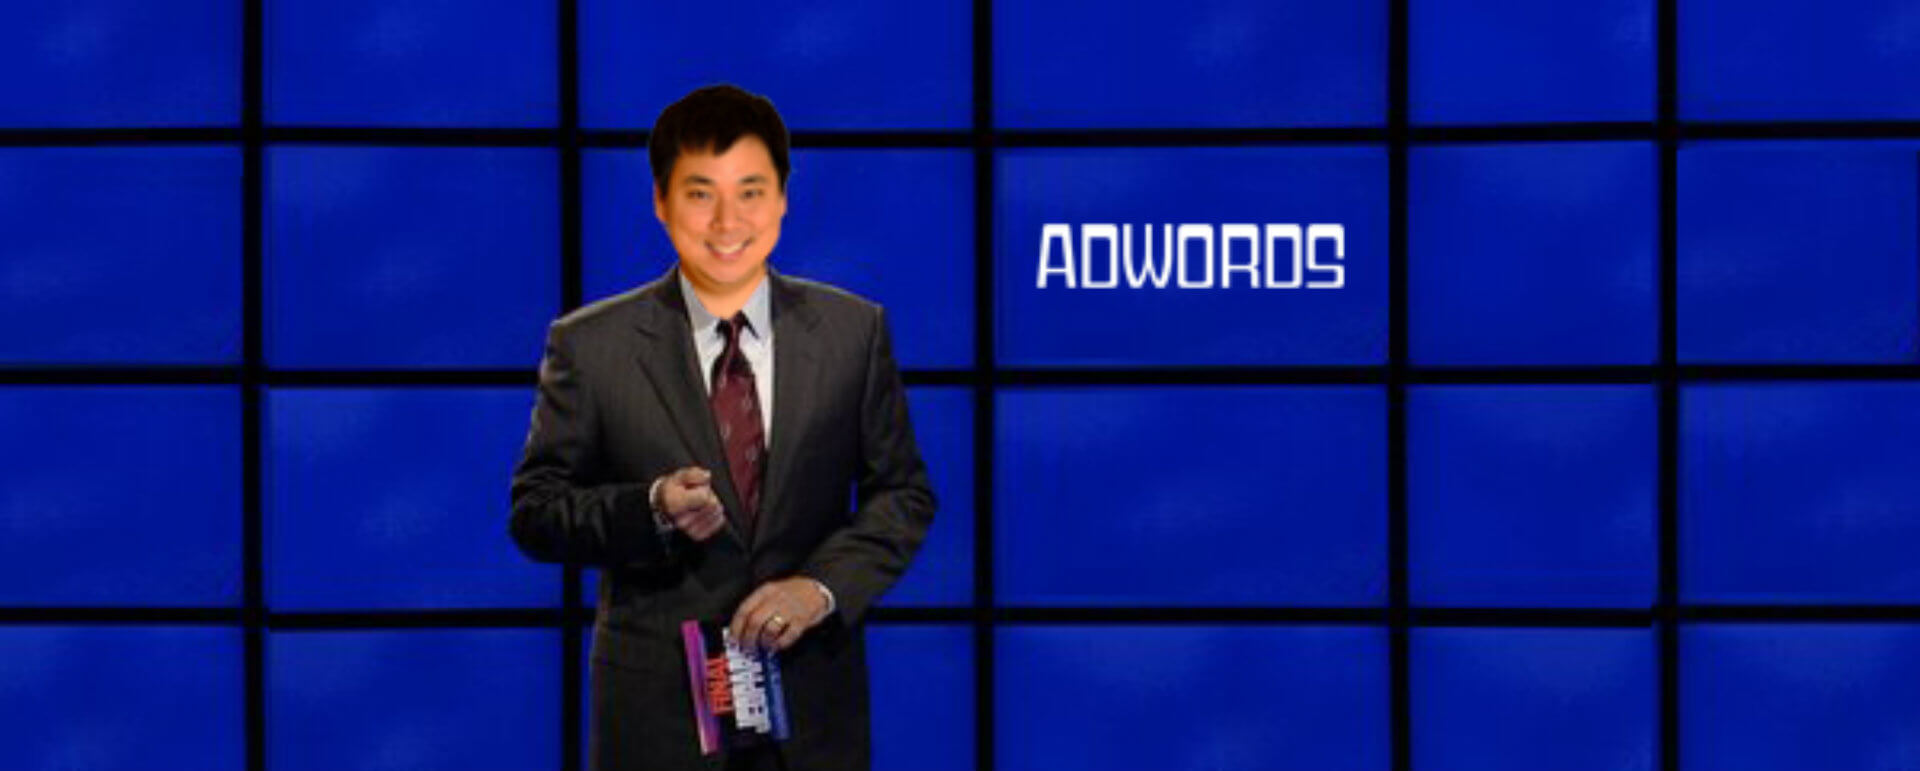 The Hardest Adwords Quiz You Ll Ever Take